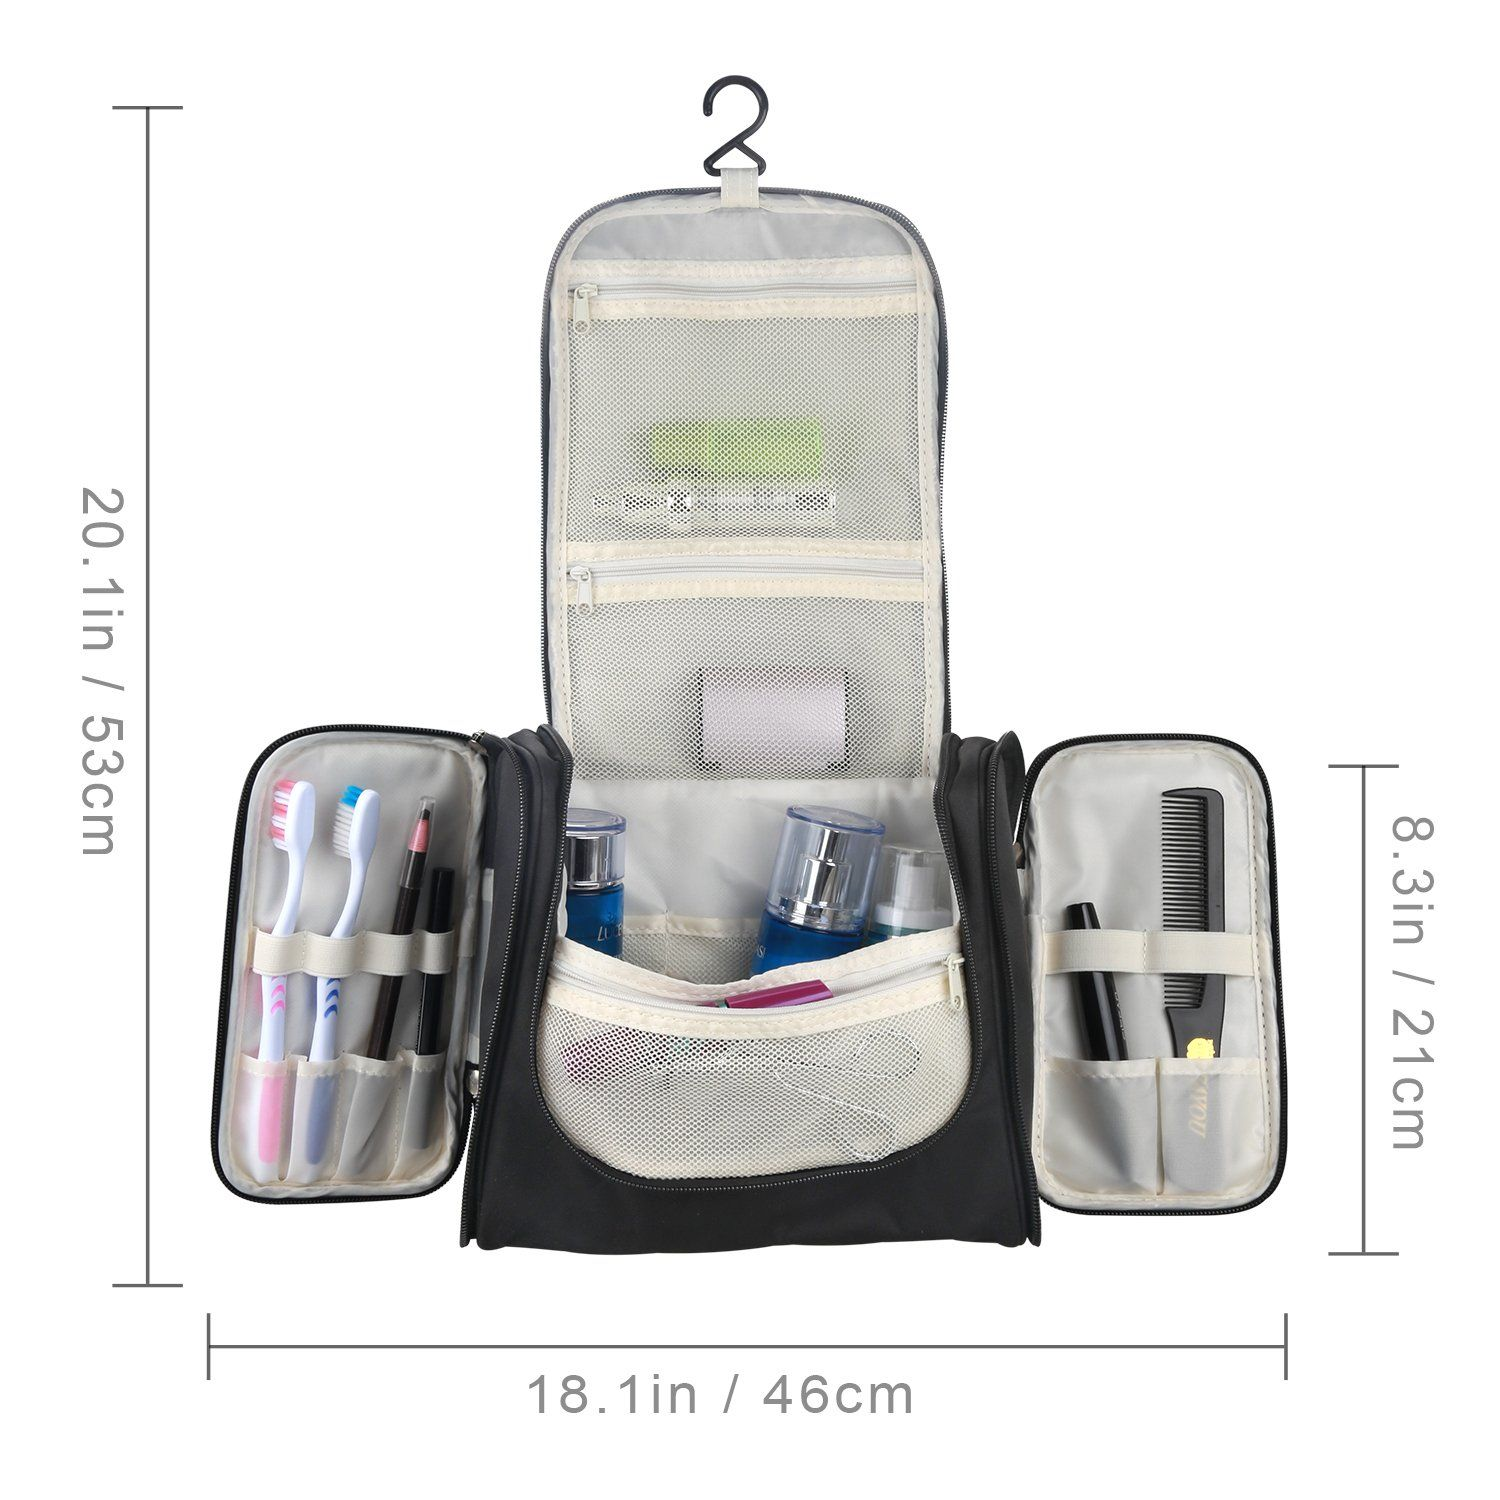 ad9013fb175a ProCase Toiletry Bag with Hanging Hook Organizer for Travel ...